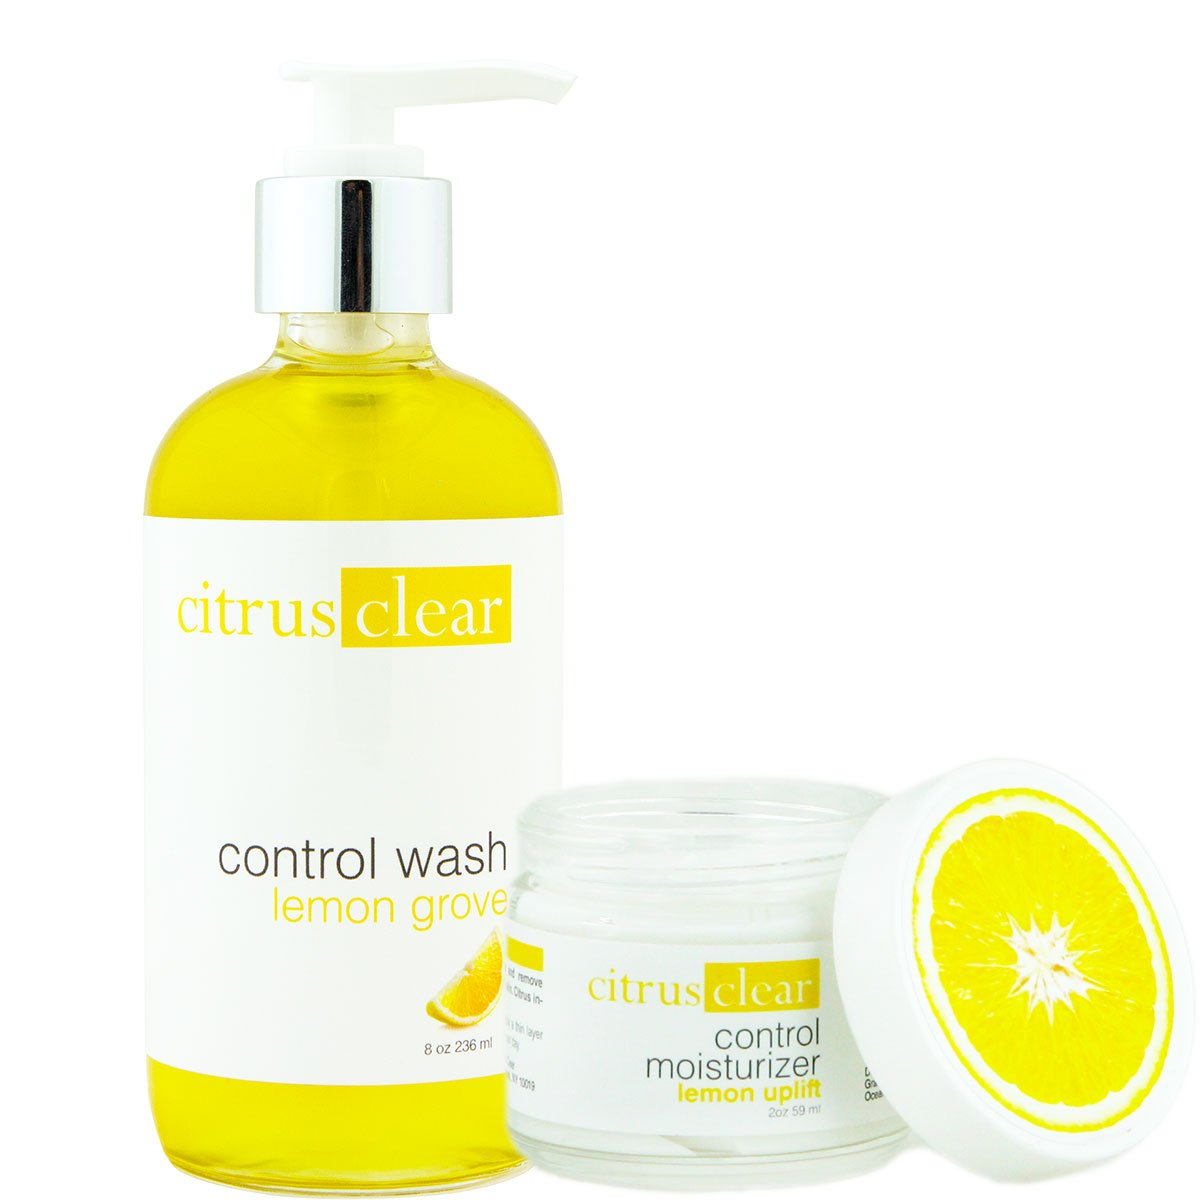 Control Acne Kit - Dermatologist Tested, All Natural for Severe Acne Breakouts